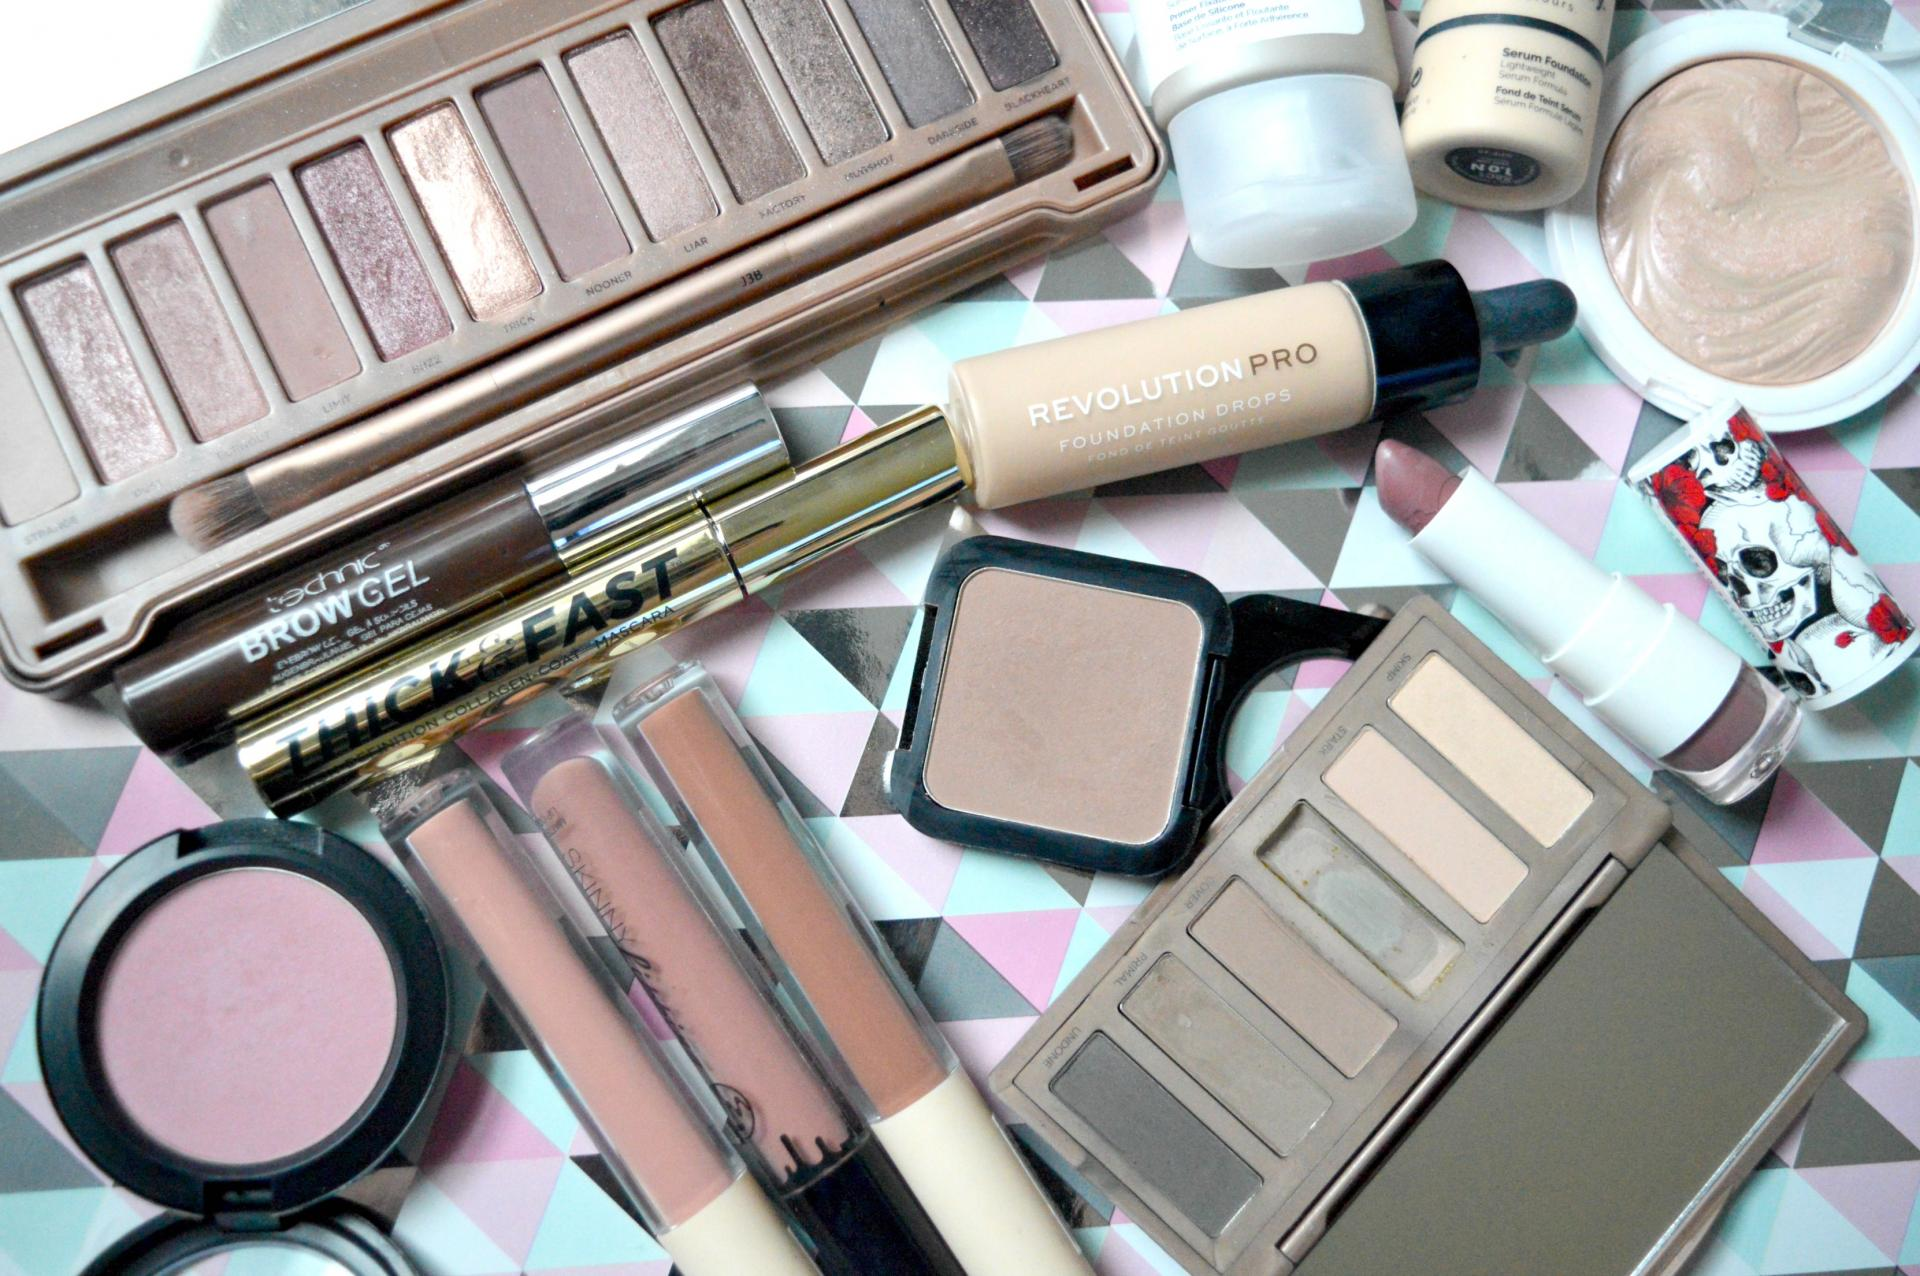 14 Of The Best Makeup Products I've Used In The Last Year